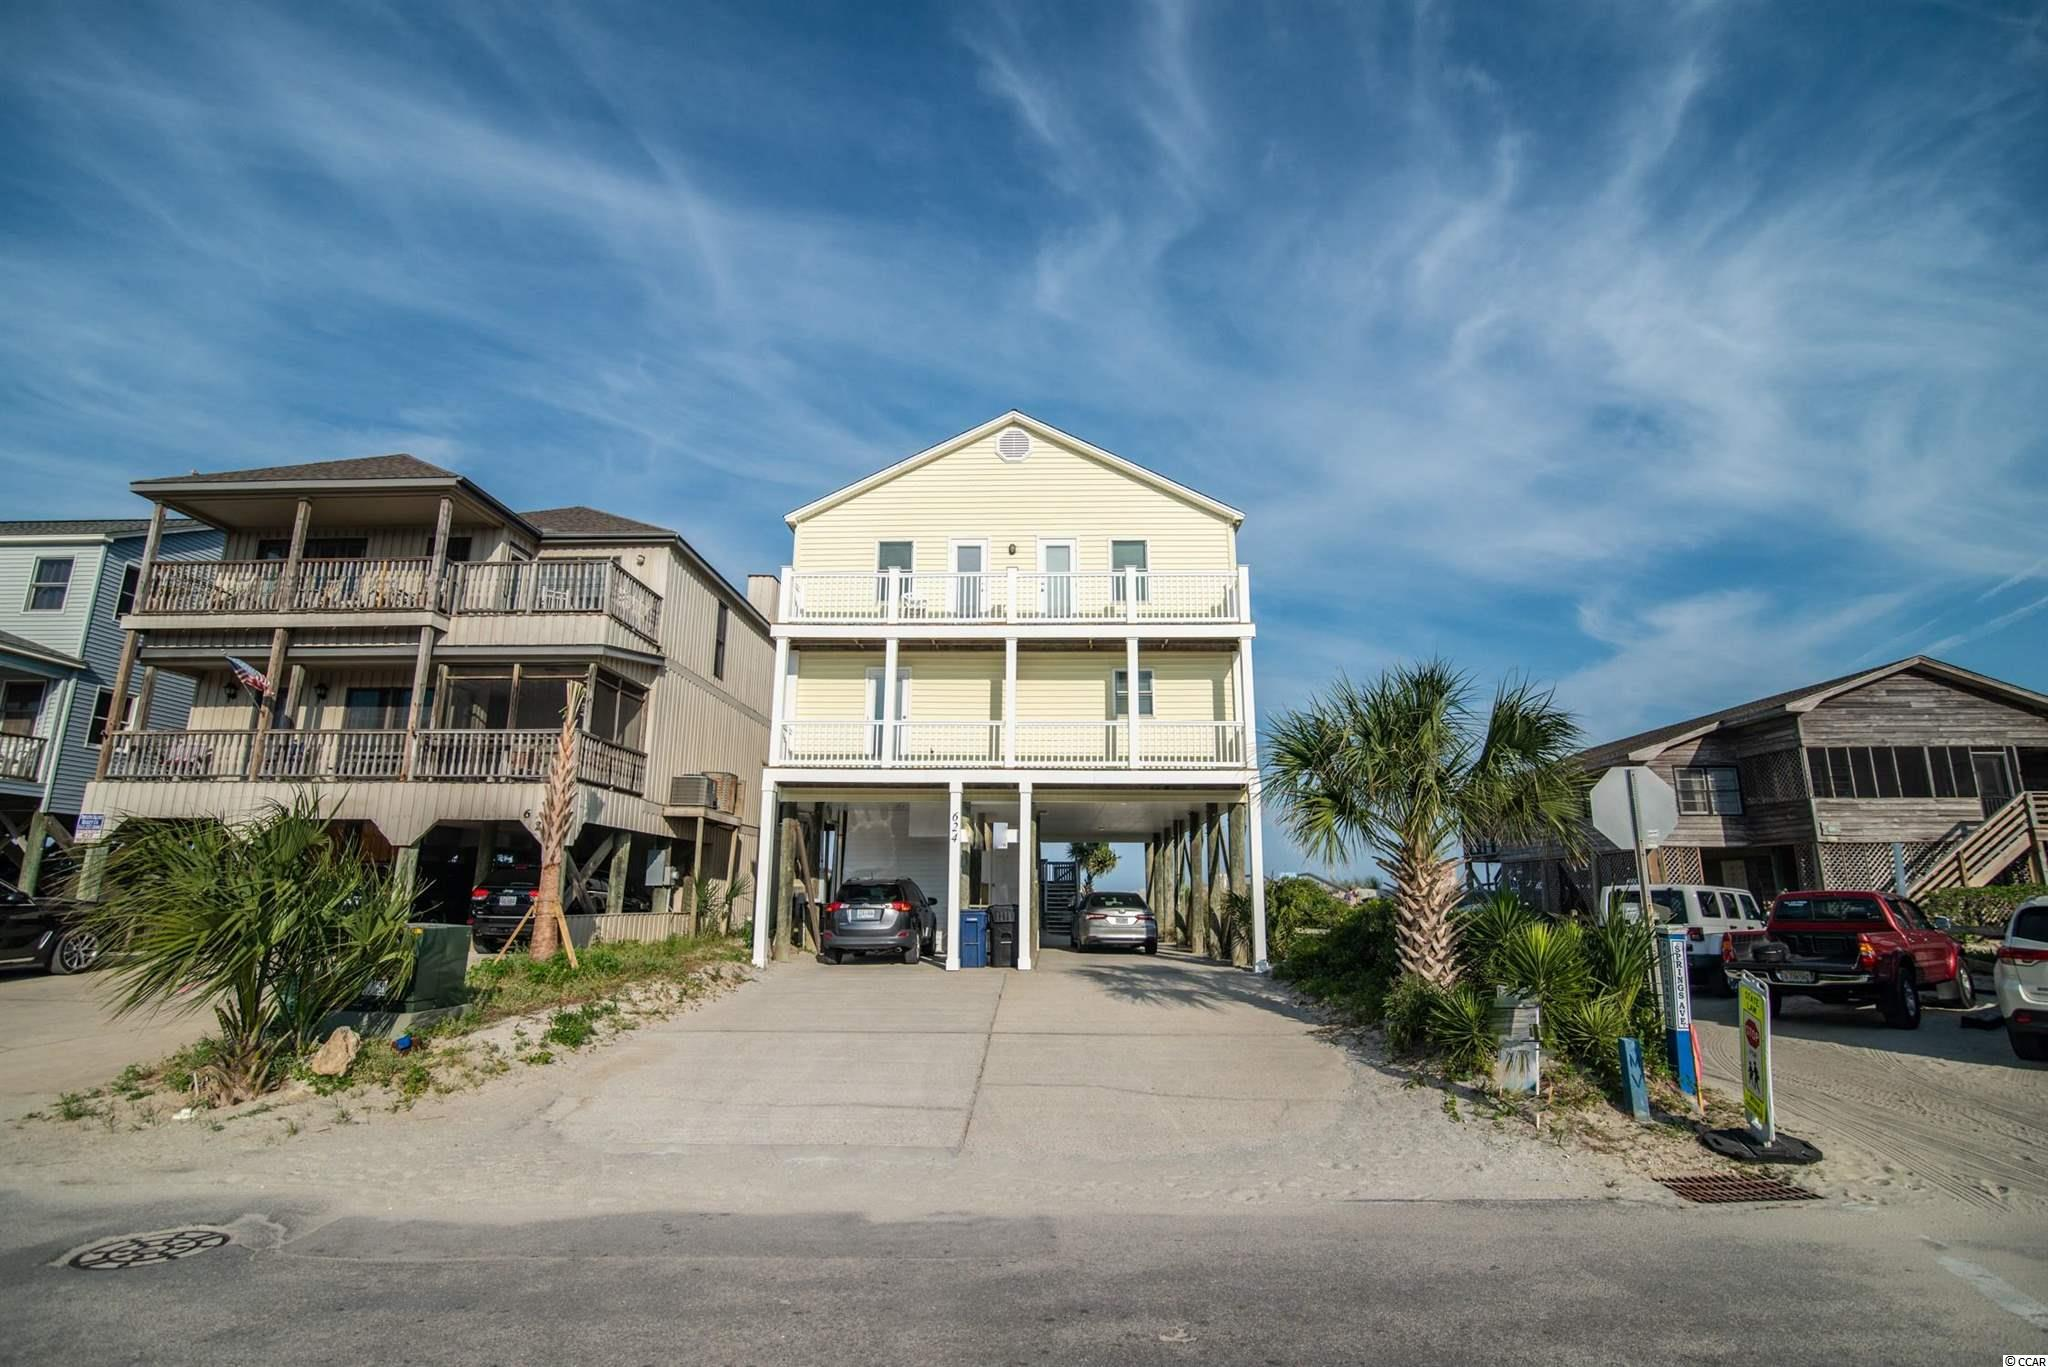 "This Pawleys Island oceanfront home enjoys a recently re-nourished beach, beautiful sunrises, and a great vacation home floor plan. Whether your needs are full time, part-time, or as an income producing beach rental ""4Hands"" will be a great choice. First floor includes great room and huge dining area overlooking the Atlantic, the kitchen offers plenty of counter and storage space, and a full bath and a bedroom with balcony. Upstairs you will find four additional guest rooms, two baths, and a laundry room. Plenty of closets throughout and large enclosed storage underneath as well as parking. Great  decks front and rear on each floor to absorb the sun and ocean breezes. Pier and deck over the dunes for seating and private access. Short drive to Pawleys creek, dining, shopping, numerous golf courses, and intra-coastal waterway access."